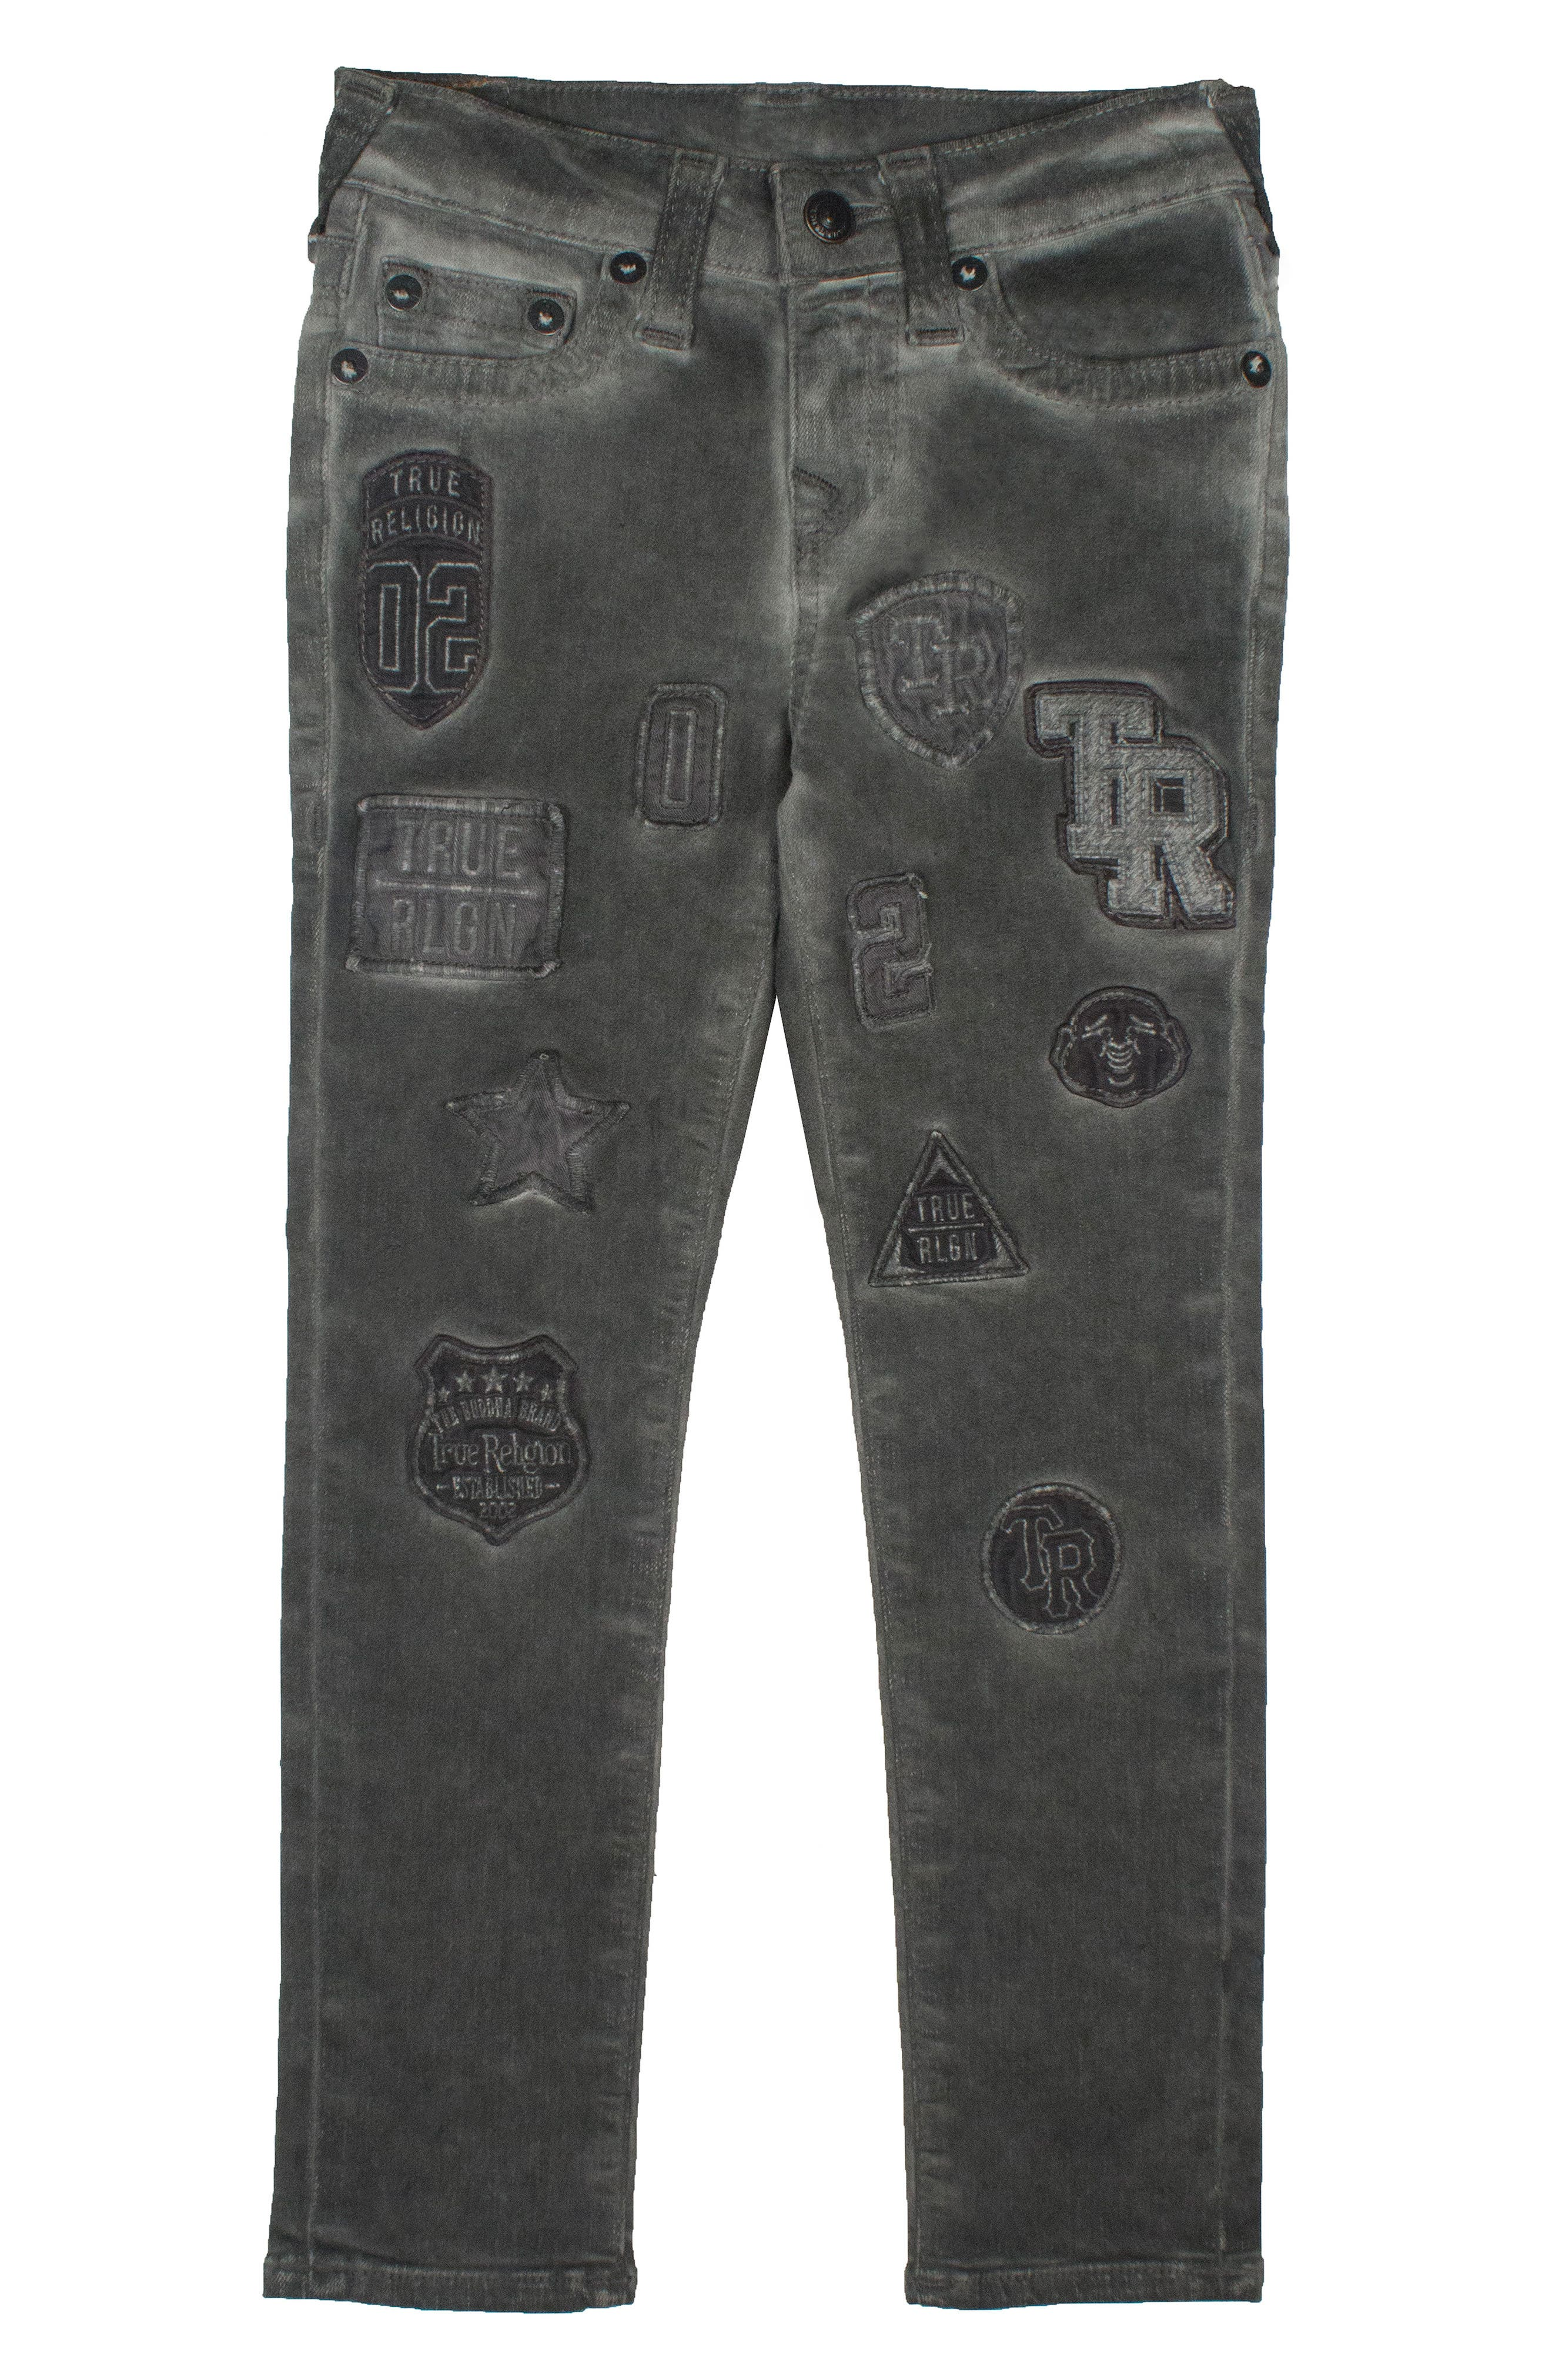 Main Image - True Religion Brand Jeans Rocco Single End Jeans (Toddler Boys & Little Boys)